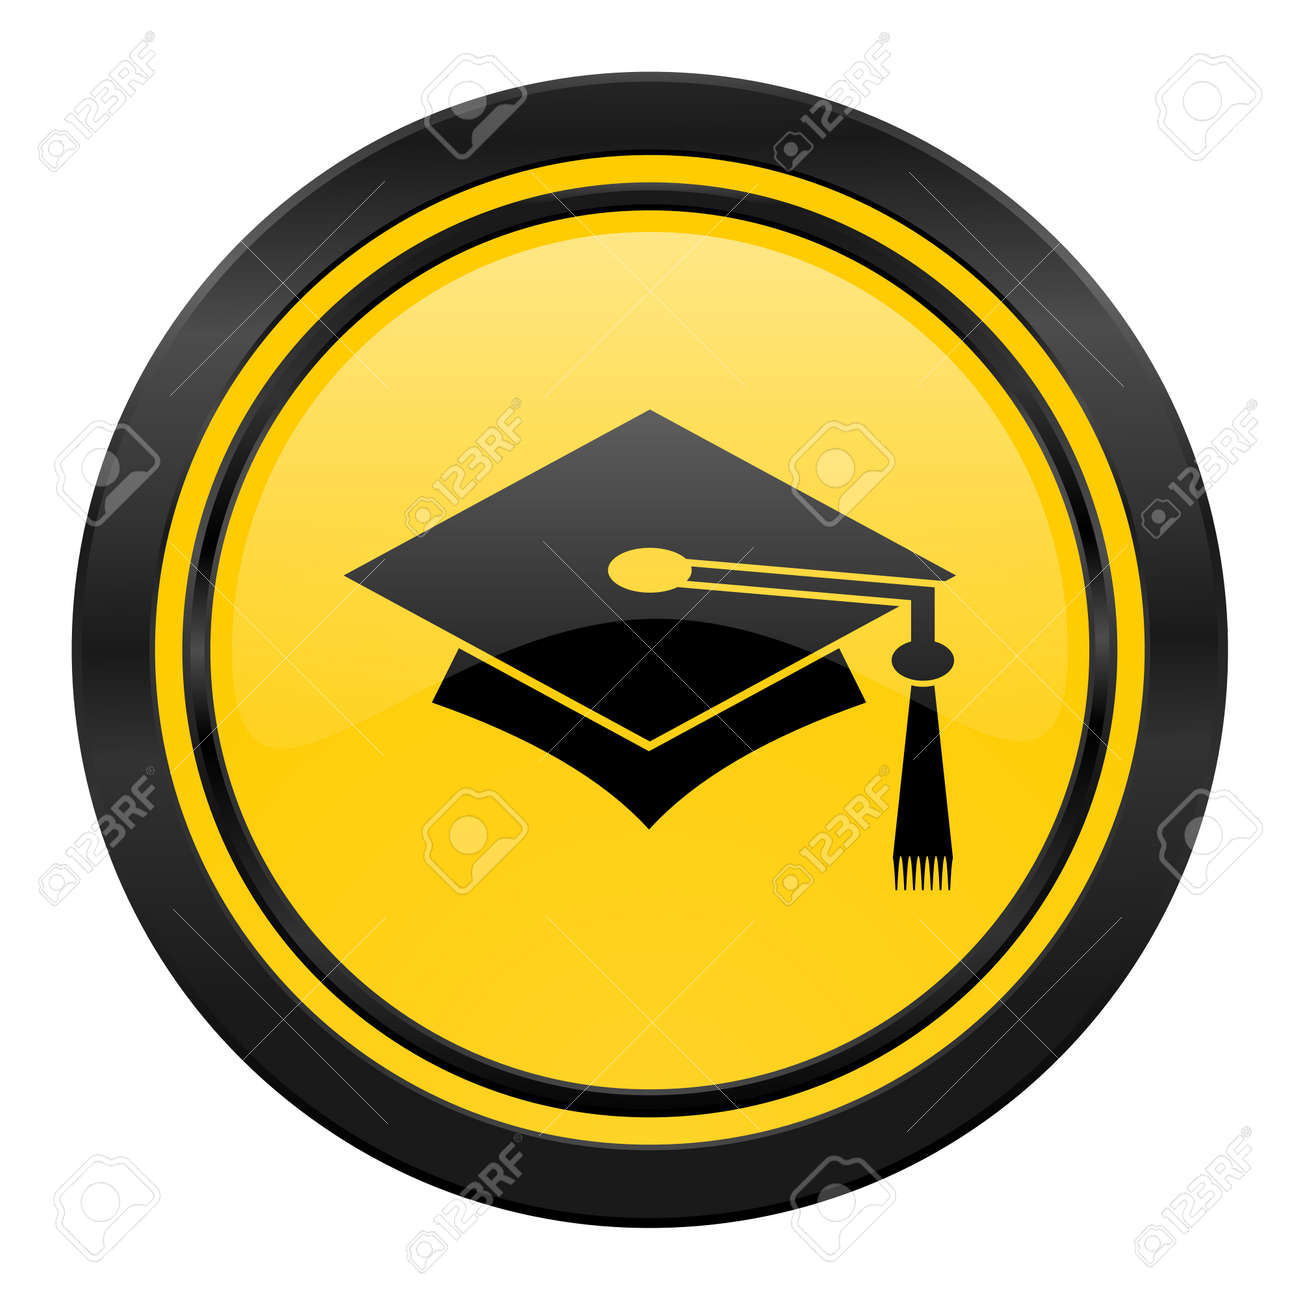 education icon yellow graduation sign stock photo picture and